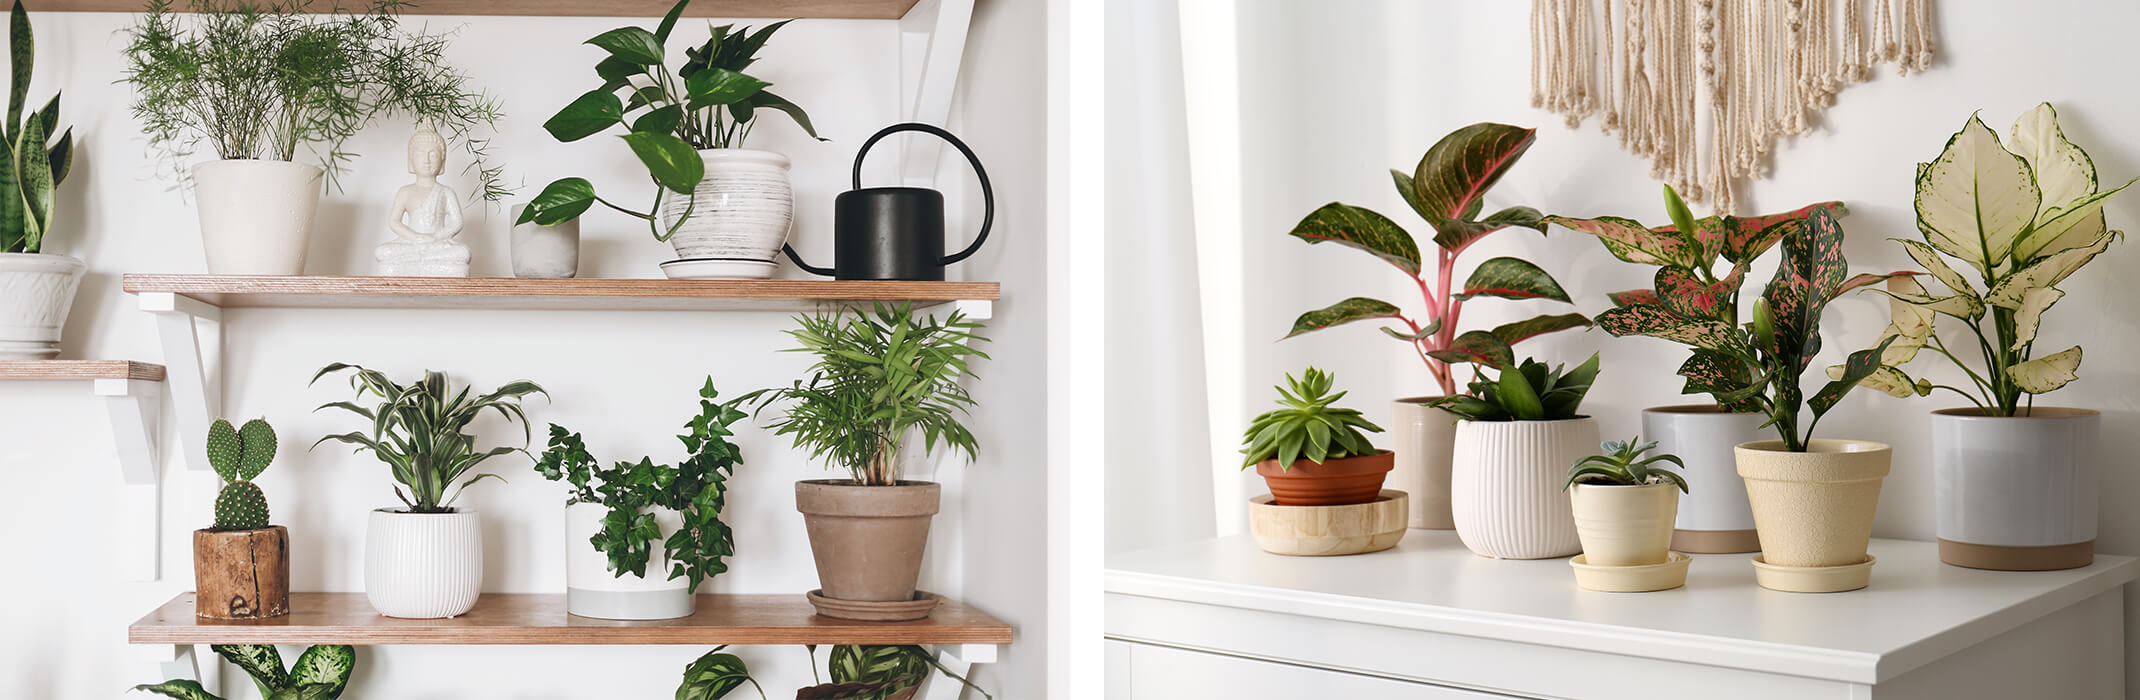 2 images: wooden shelves with a variety of potted houseplants, and a white dresser with a variety of potted houseplants on it and a cream macrame wall hanging in the background